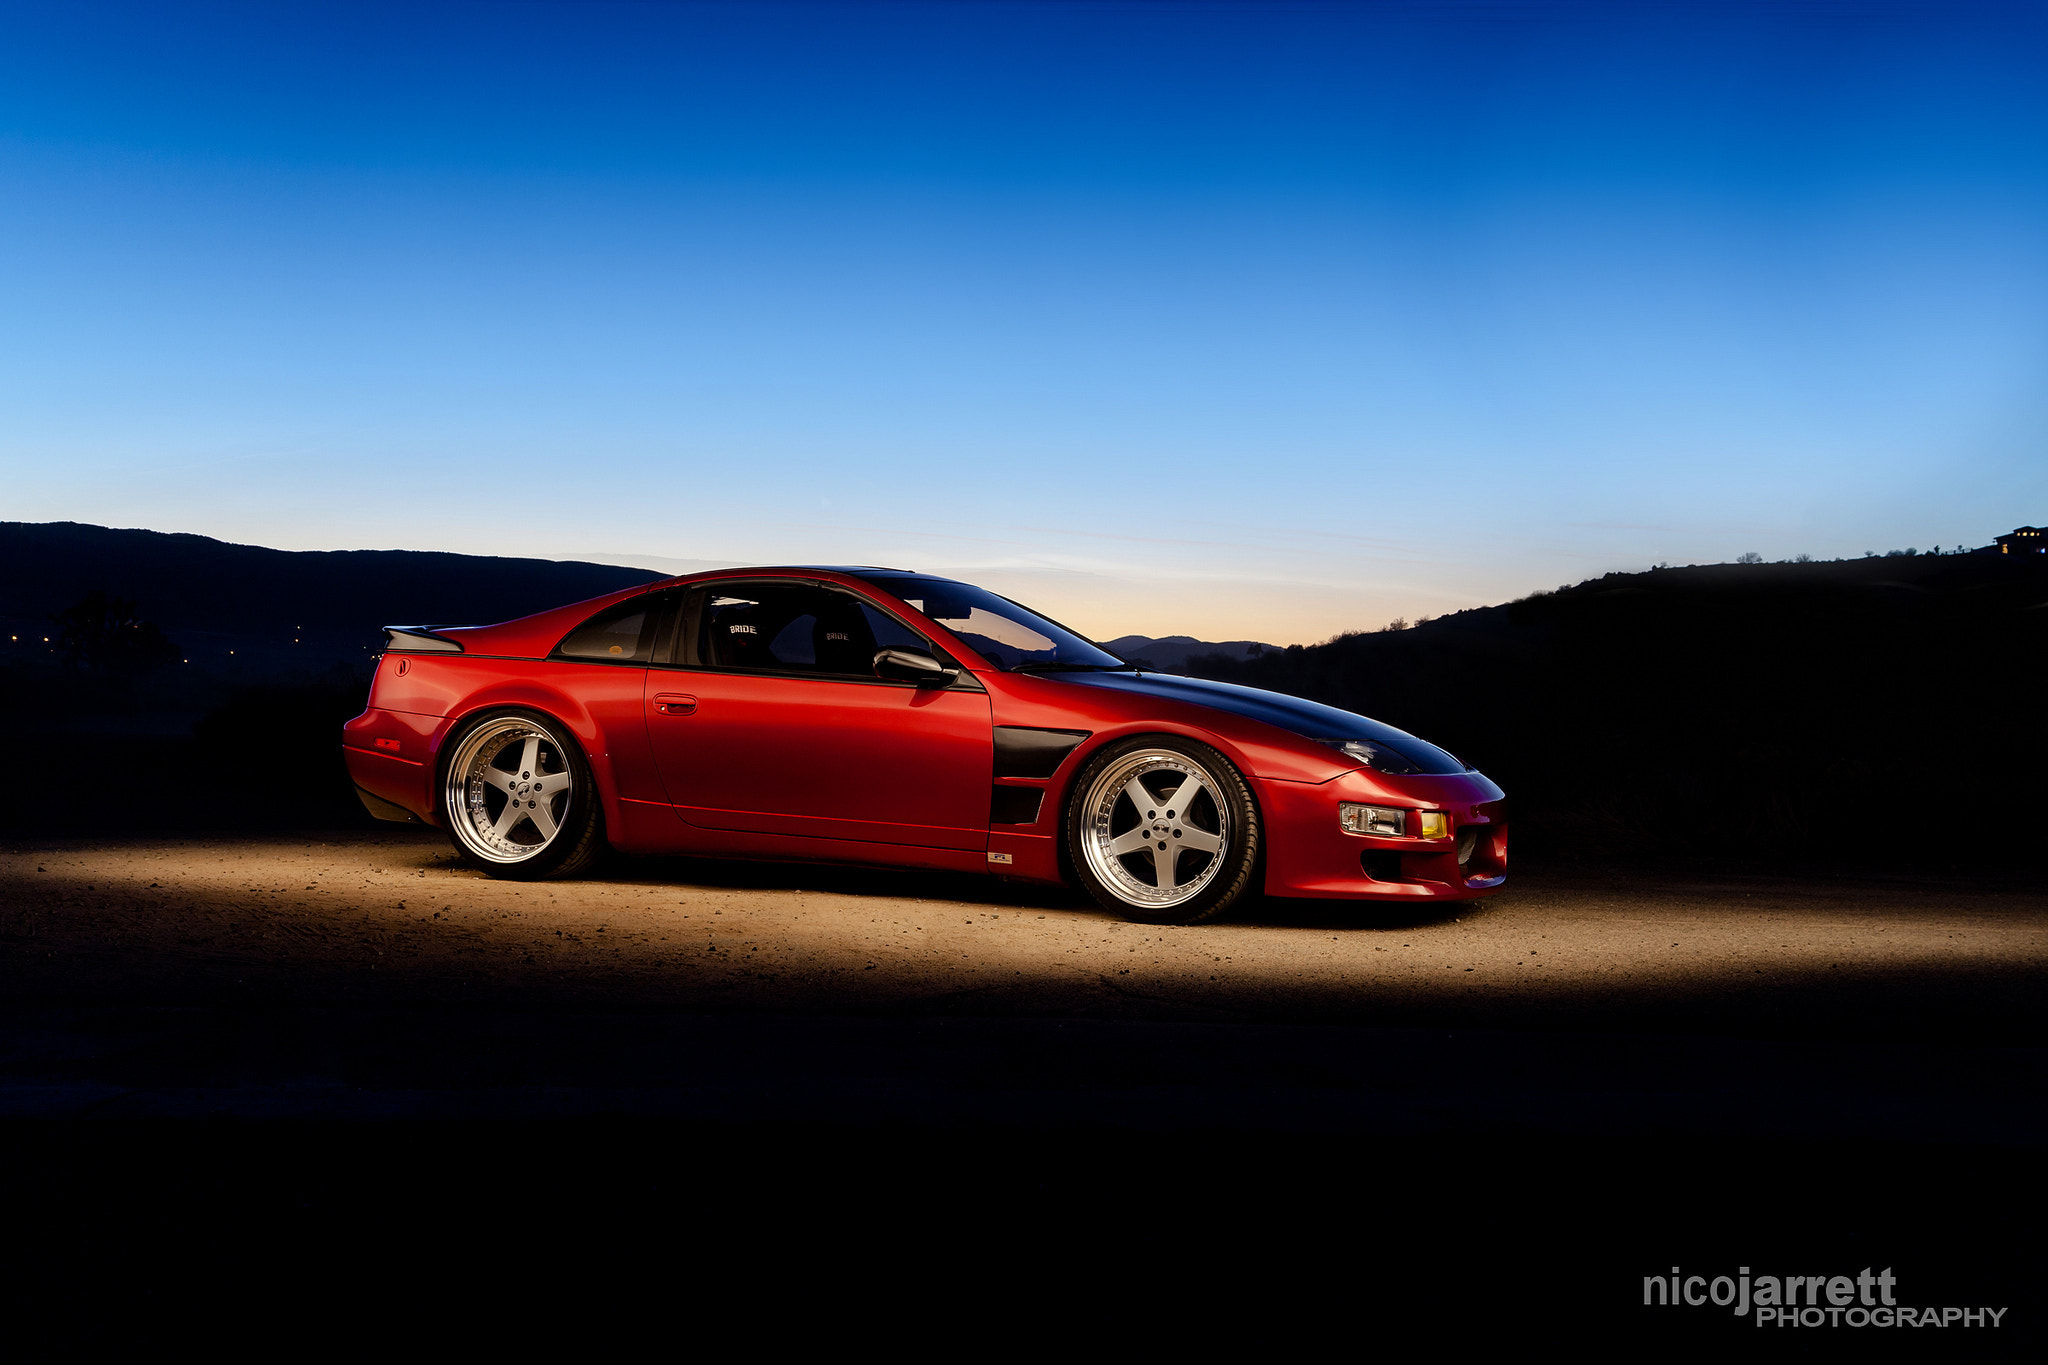 Photograph 300ZX Light Paint Photoshoot by Nico Jarrett on 500px